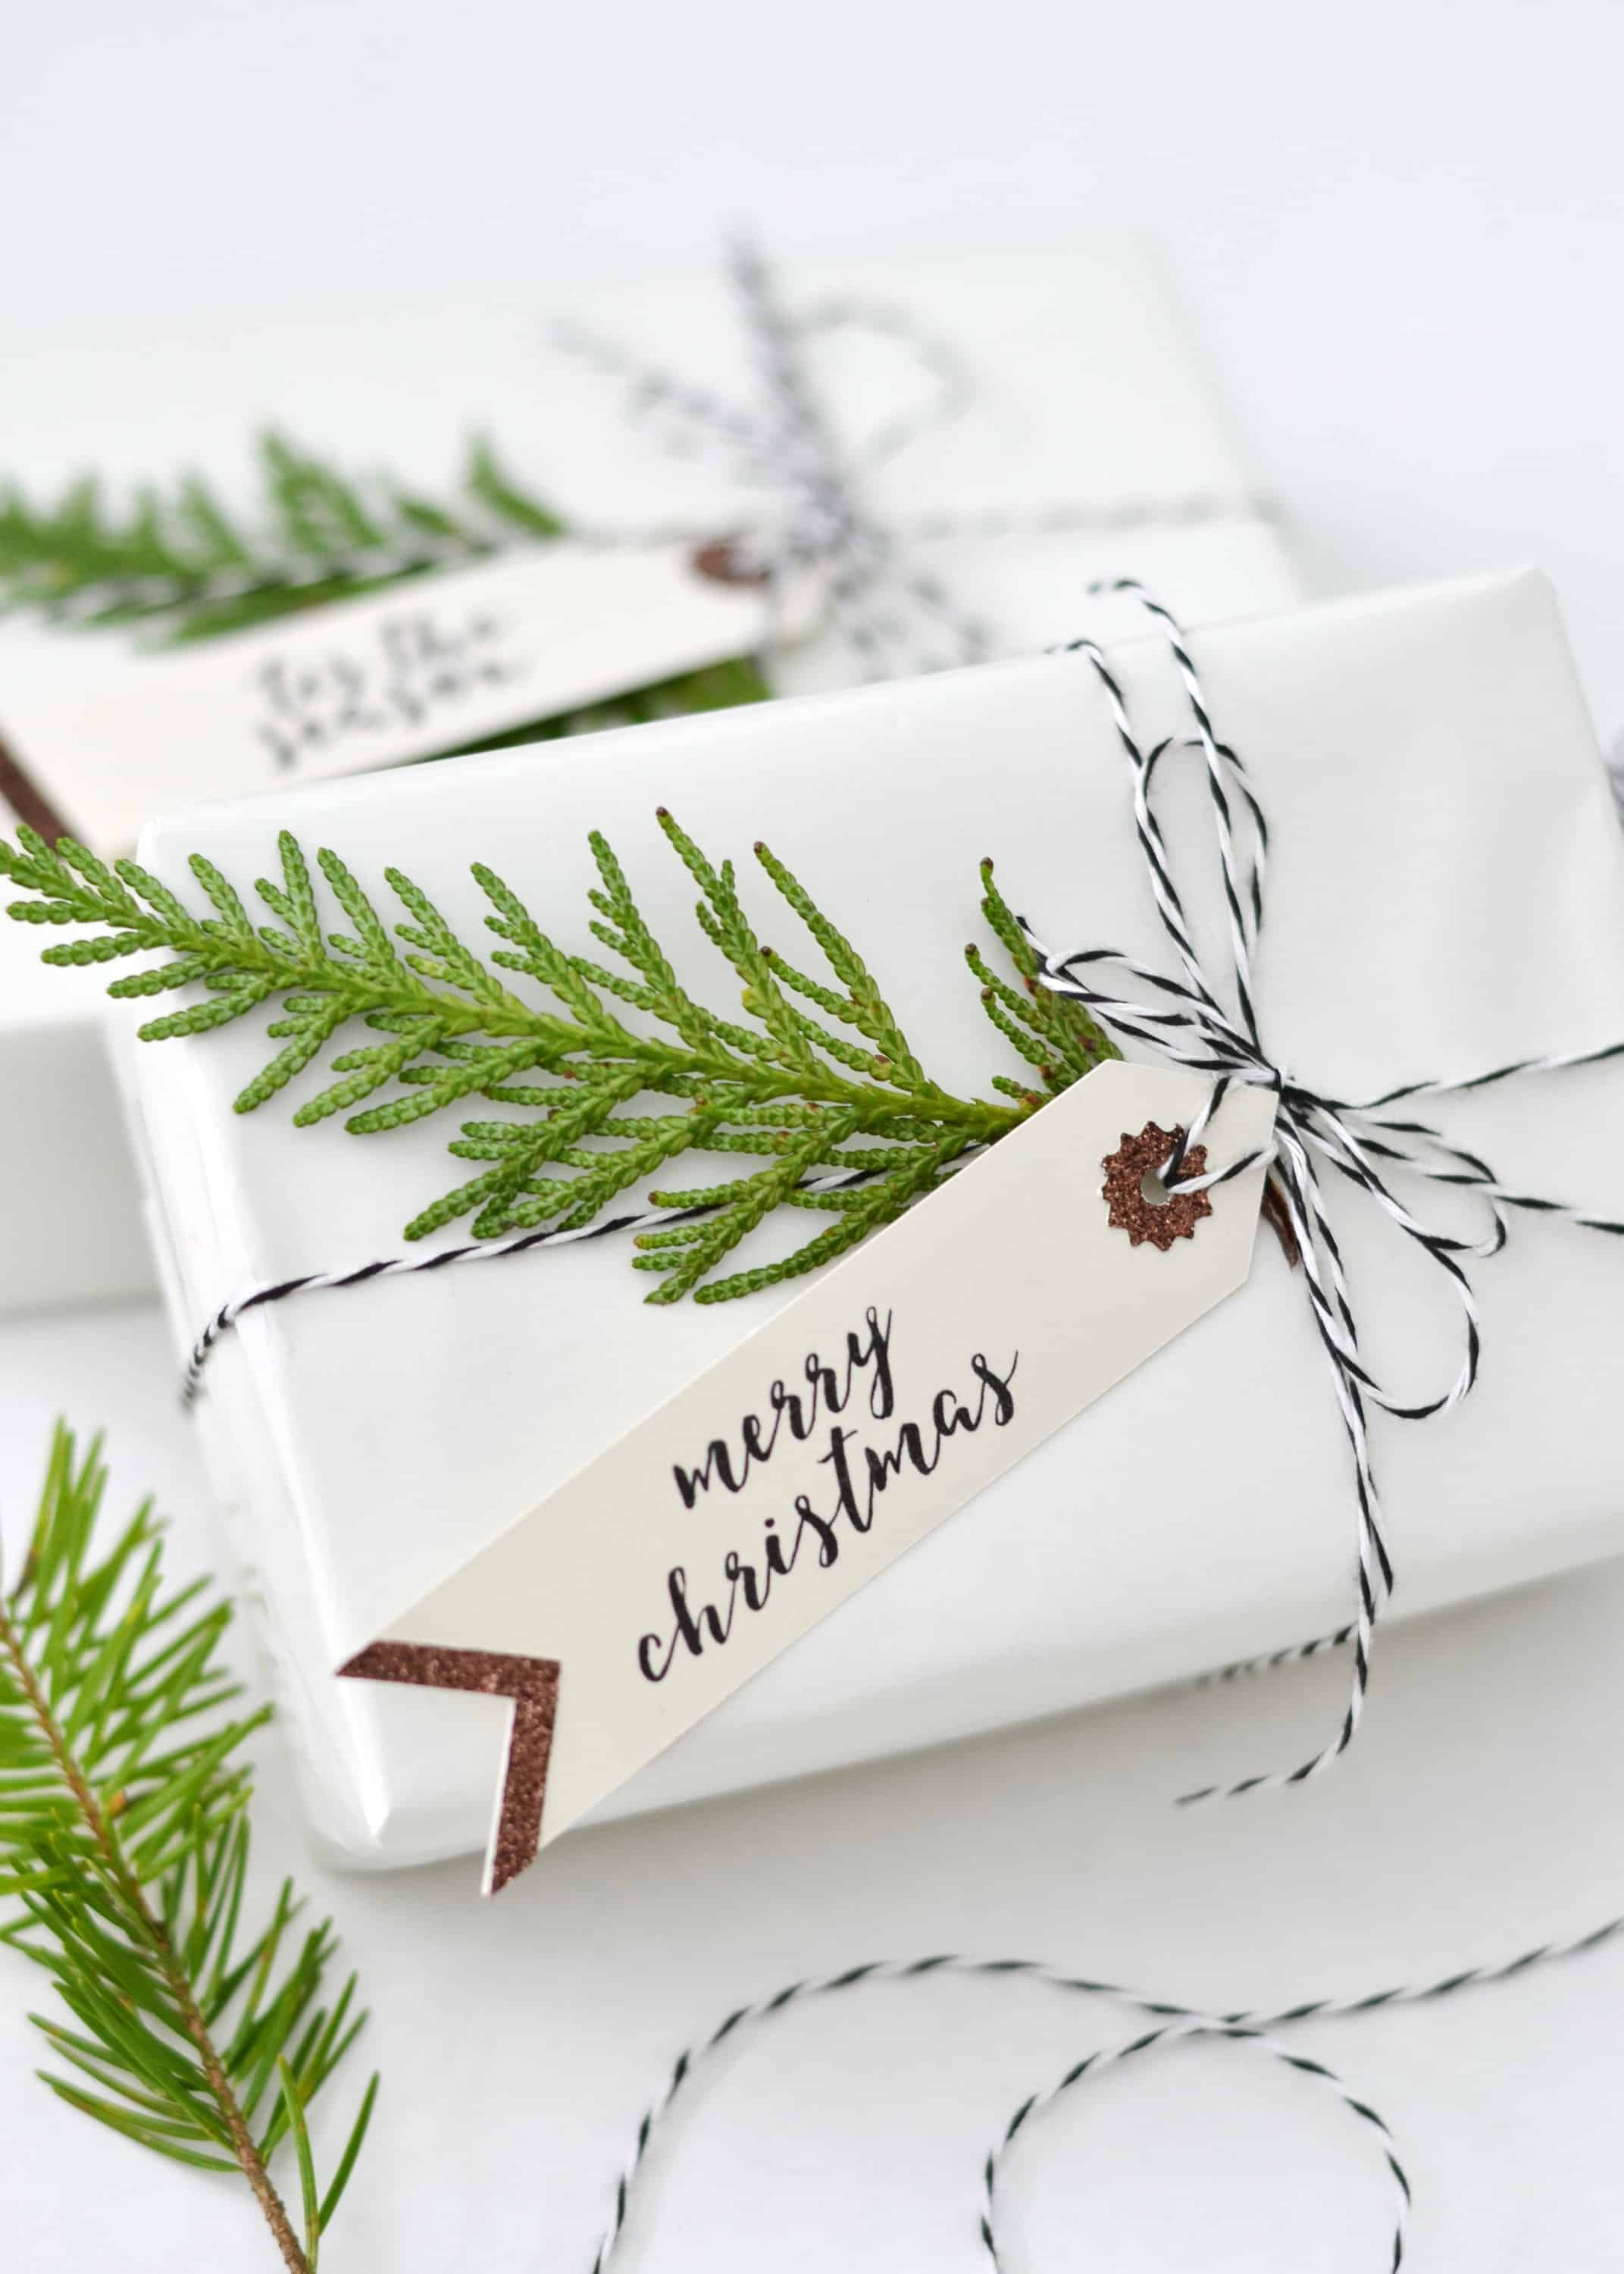 These free printable Christmas tags are the perfect finishing touch to your Christmas packages this year! These tags were hand painted just for Boxwood Avenue readers, and I am so excited to share them with you!